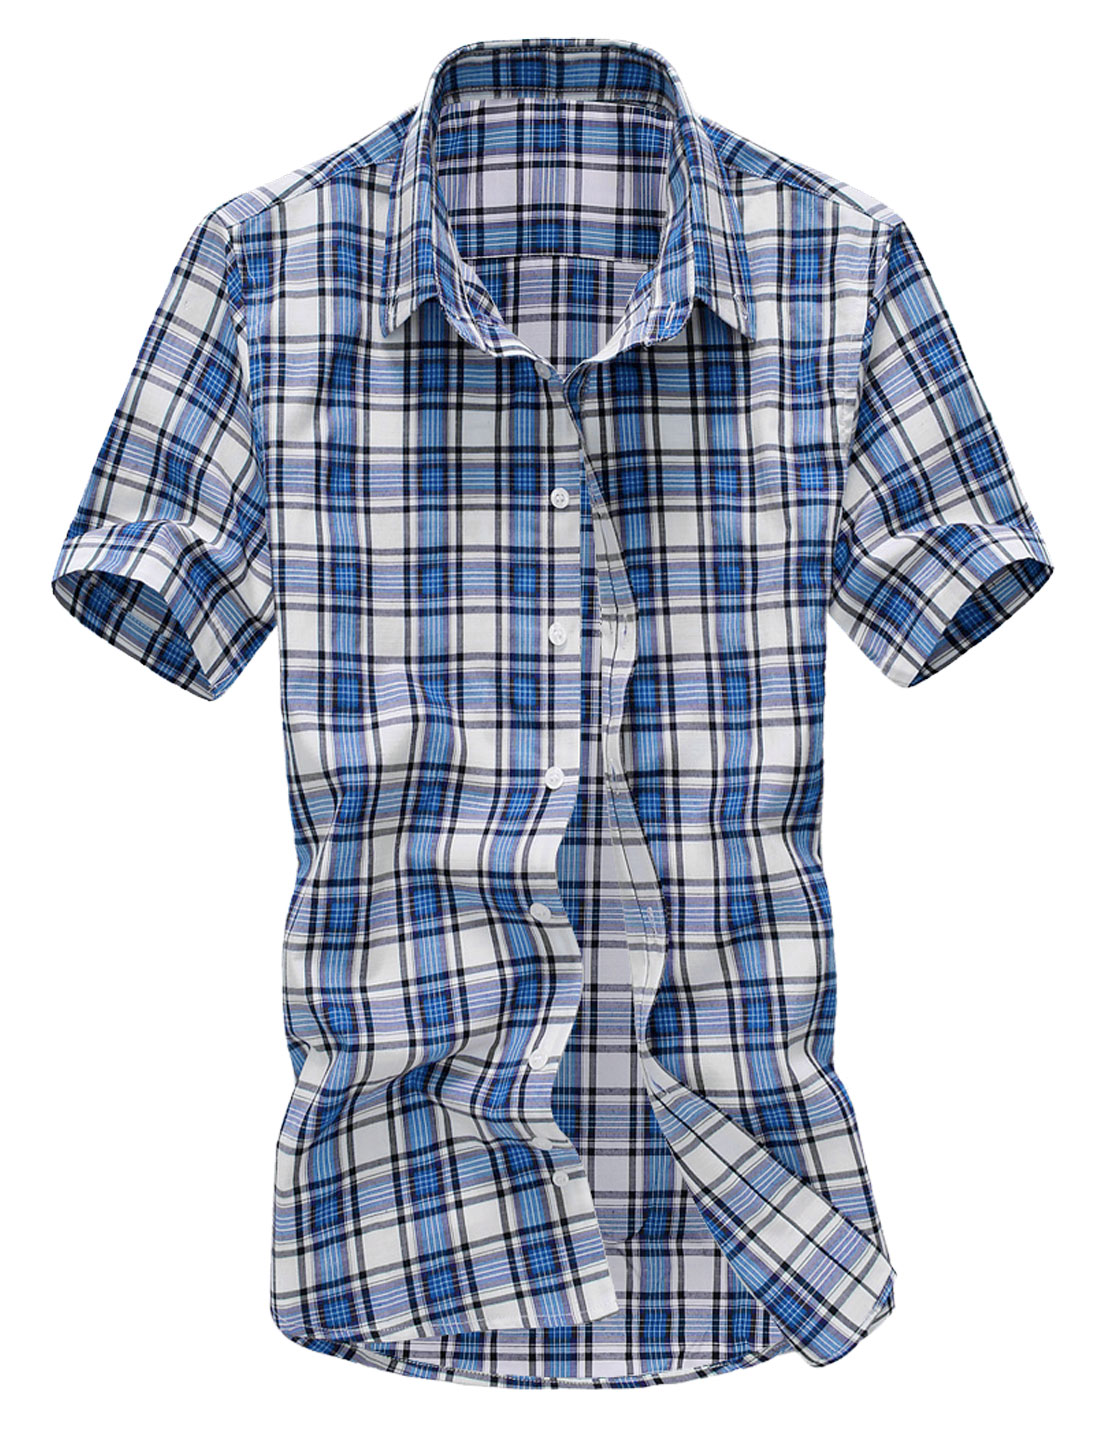 Men New Design Point Collar Short Sleeve Check Single Breasted Shirt Blue M